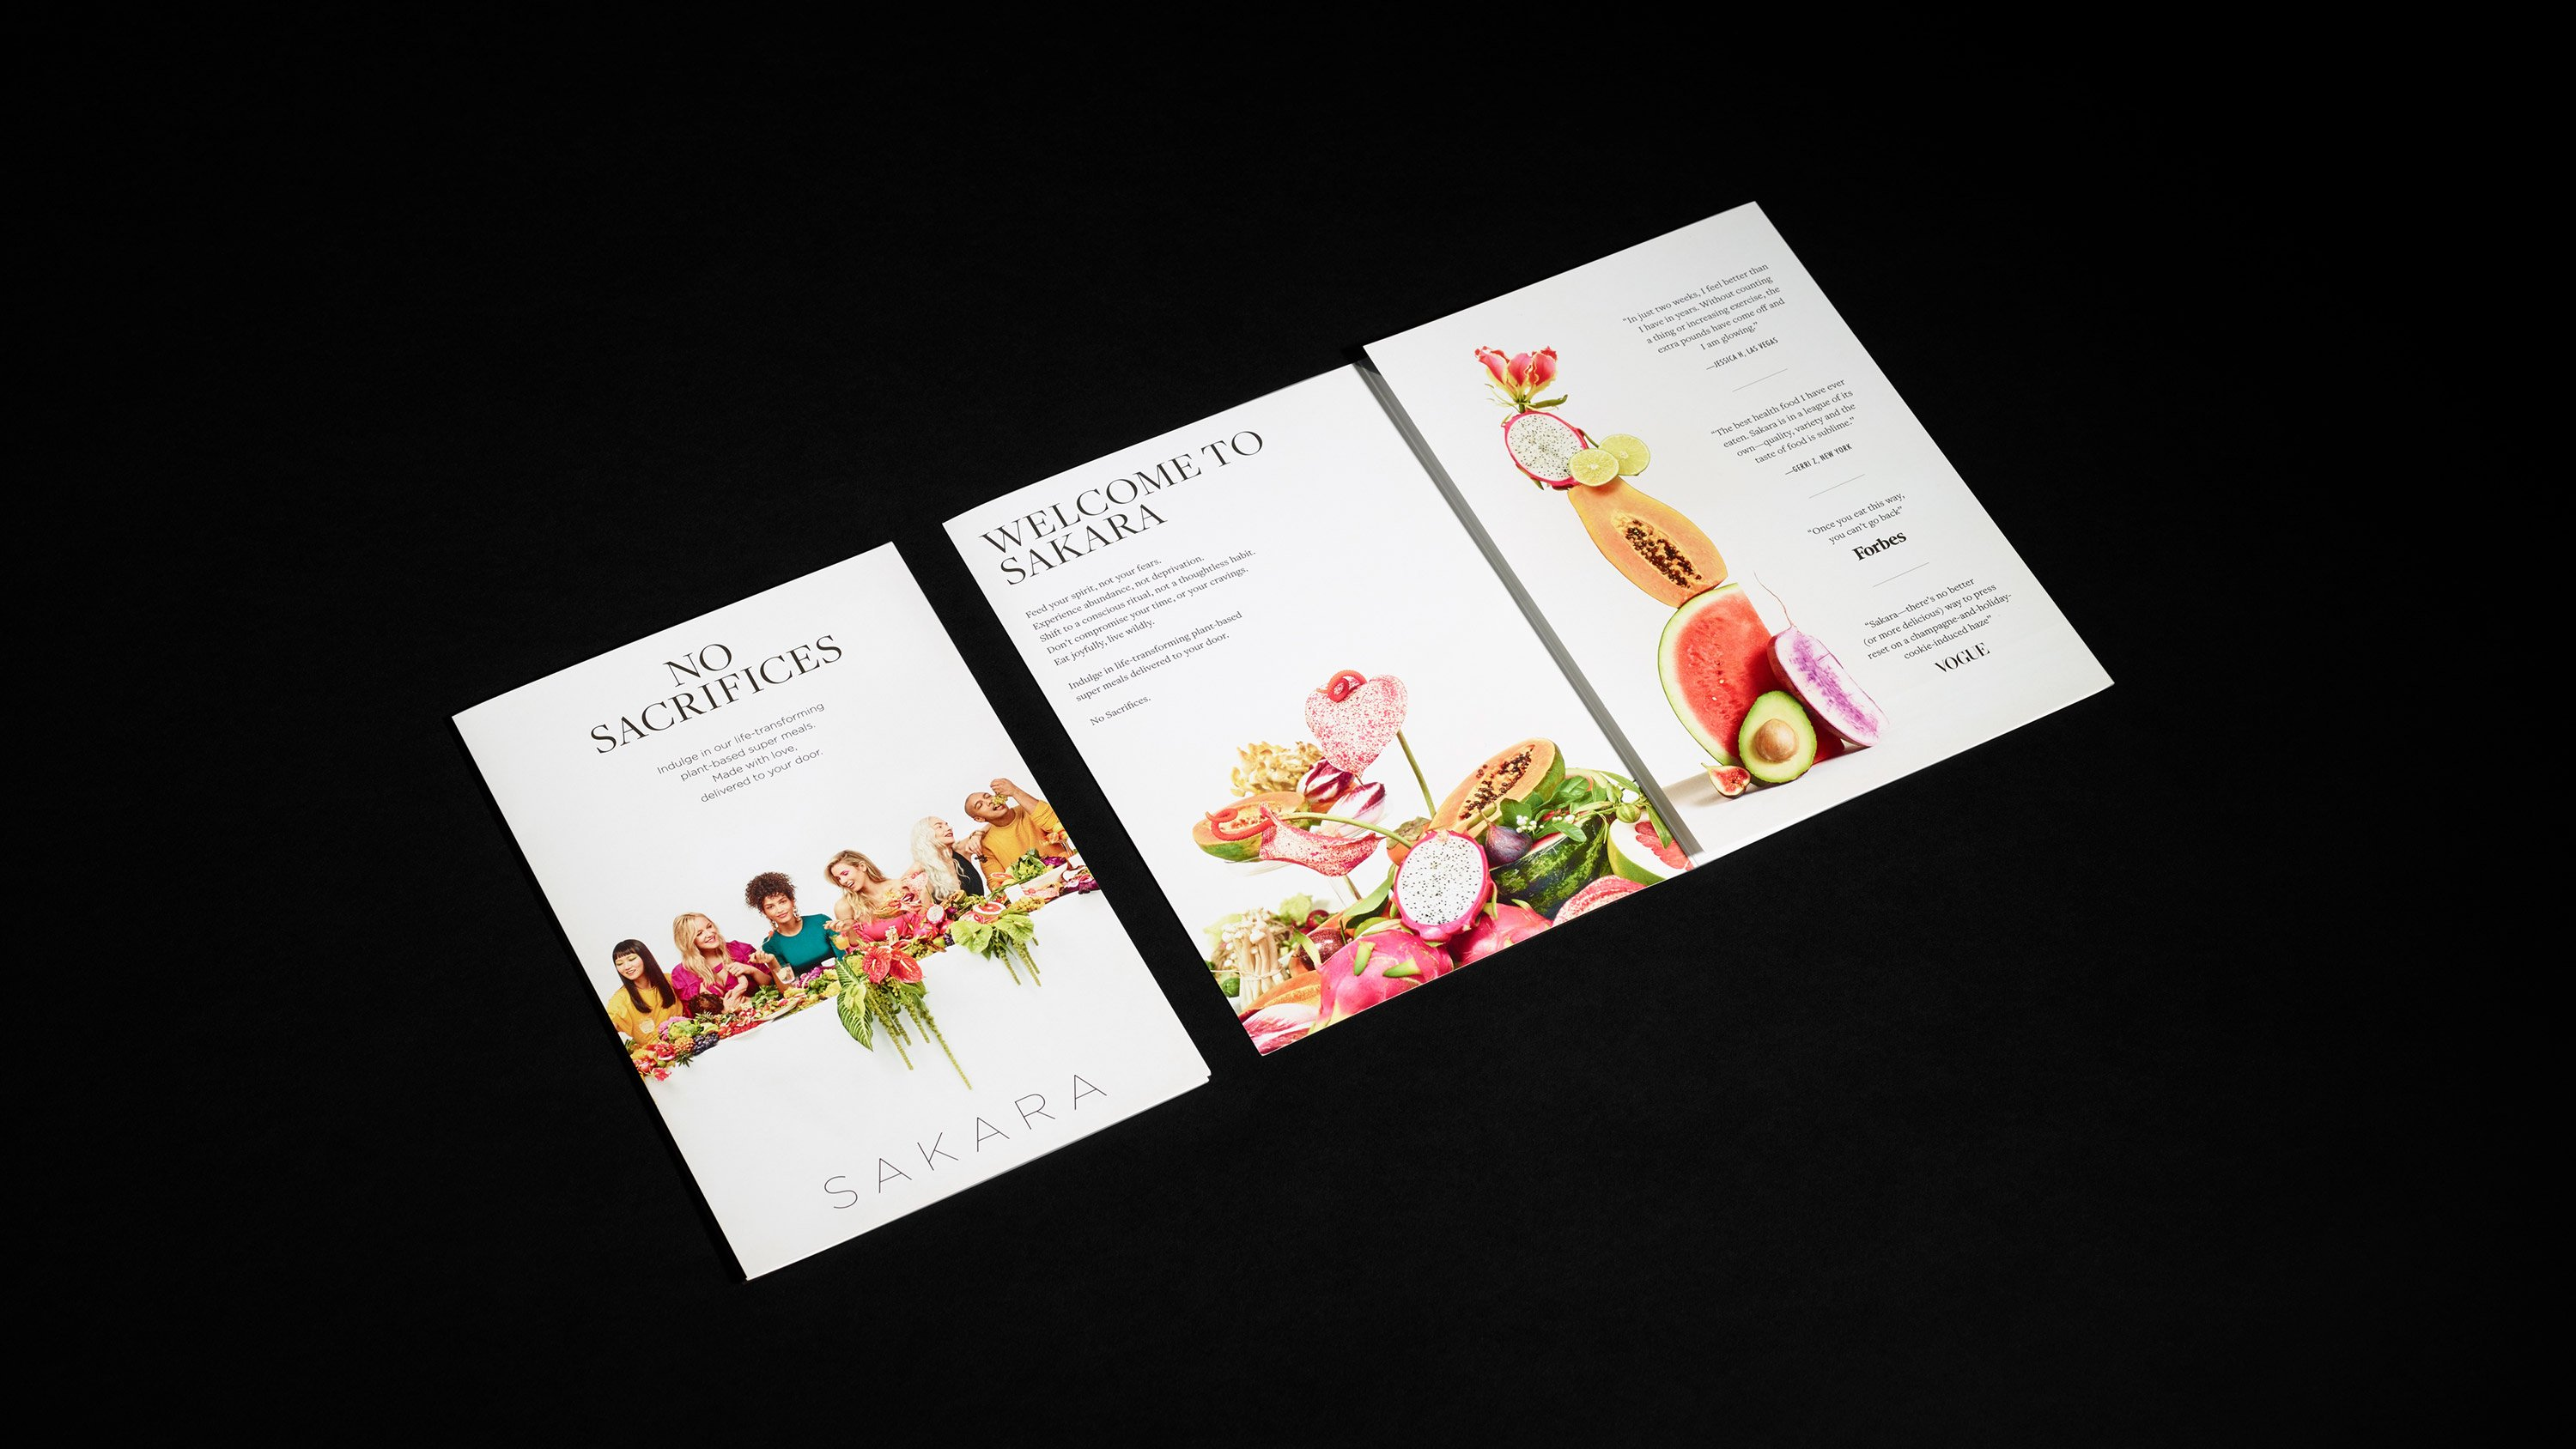 """Sakara """"No Sacrifices"""" campaign direct-mailer 3-up, Art direction and design by RoAndCo"""